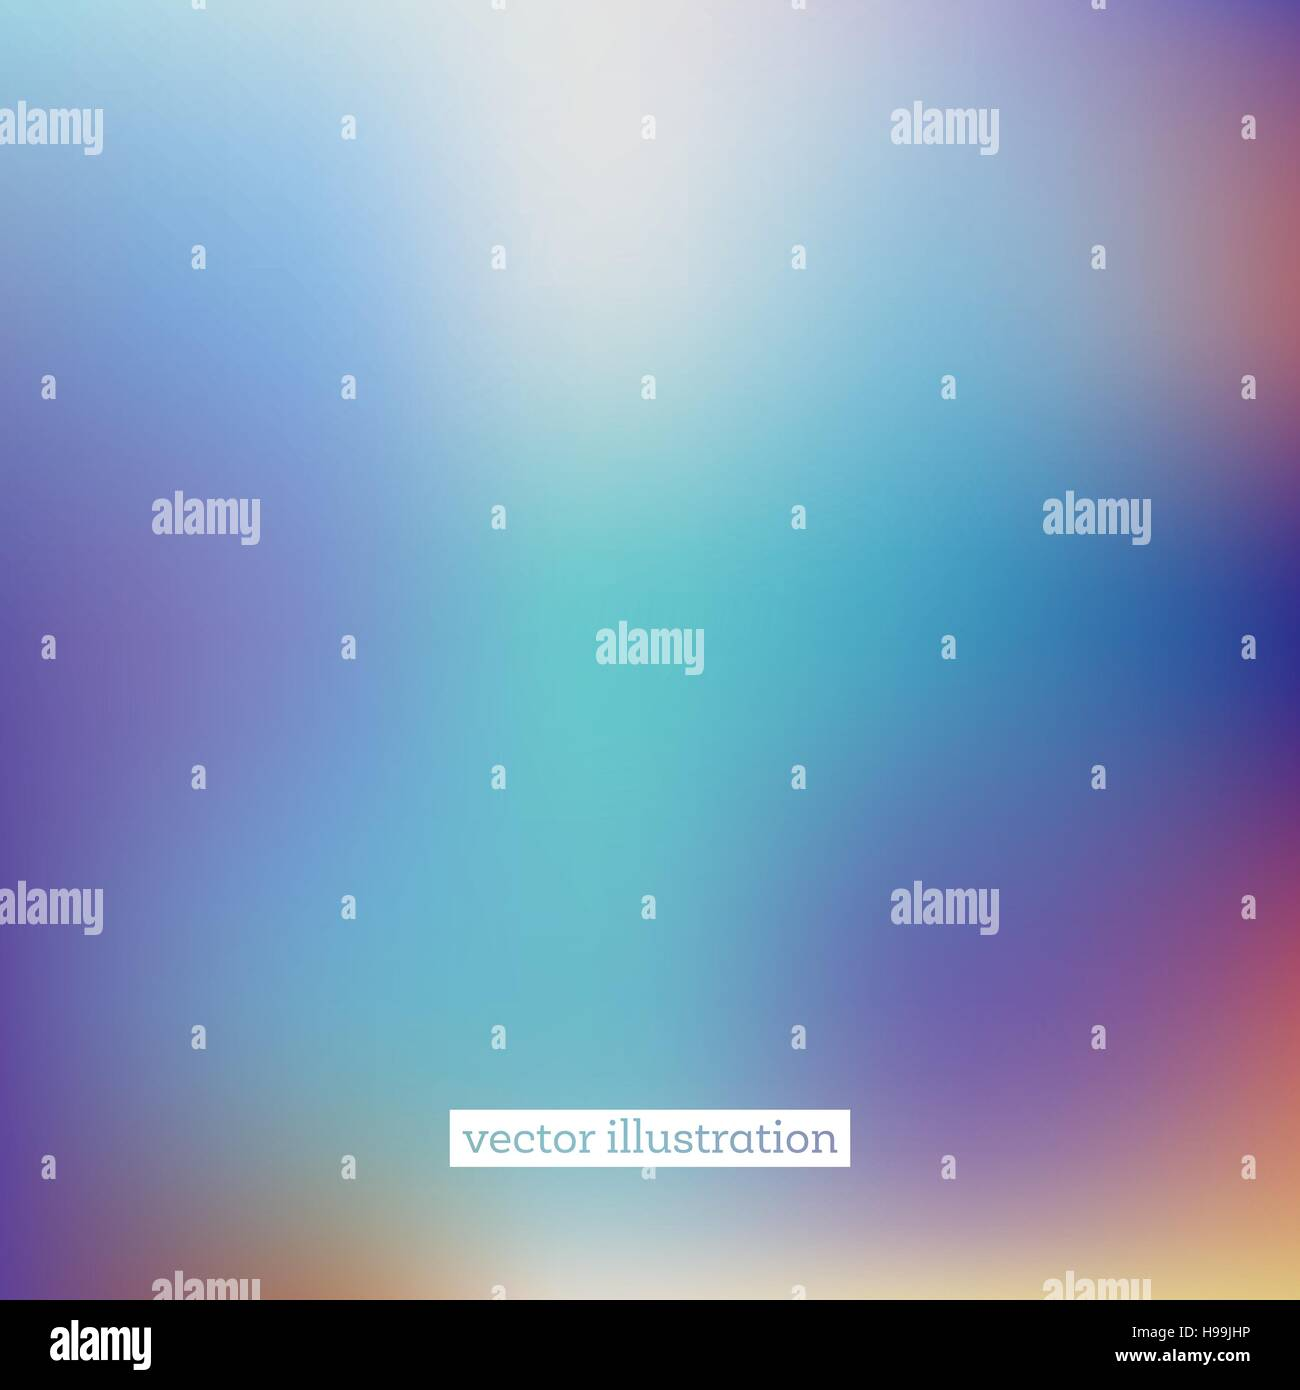 Abstract Blurred Background in Bright Colors. Vector Illustration. - Stock Vector